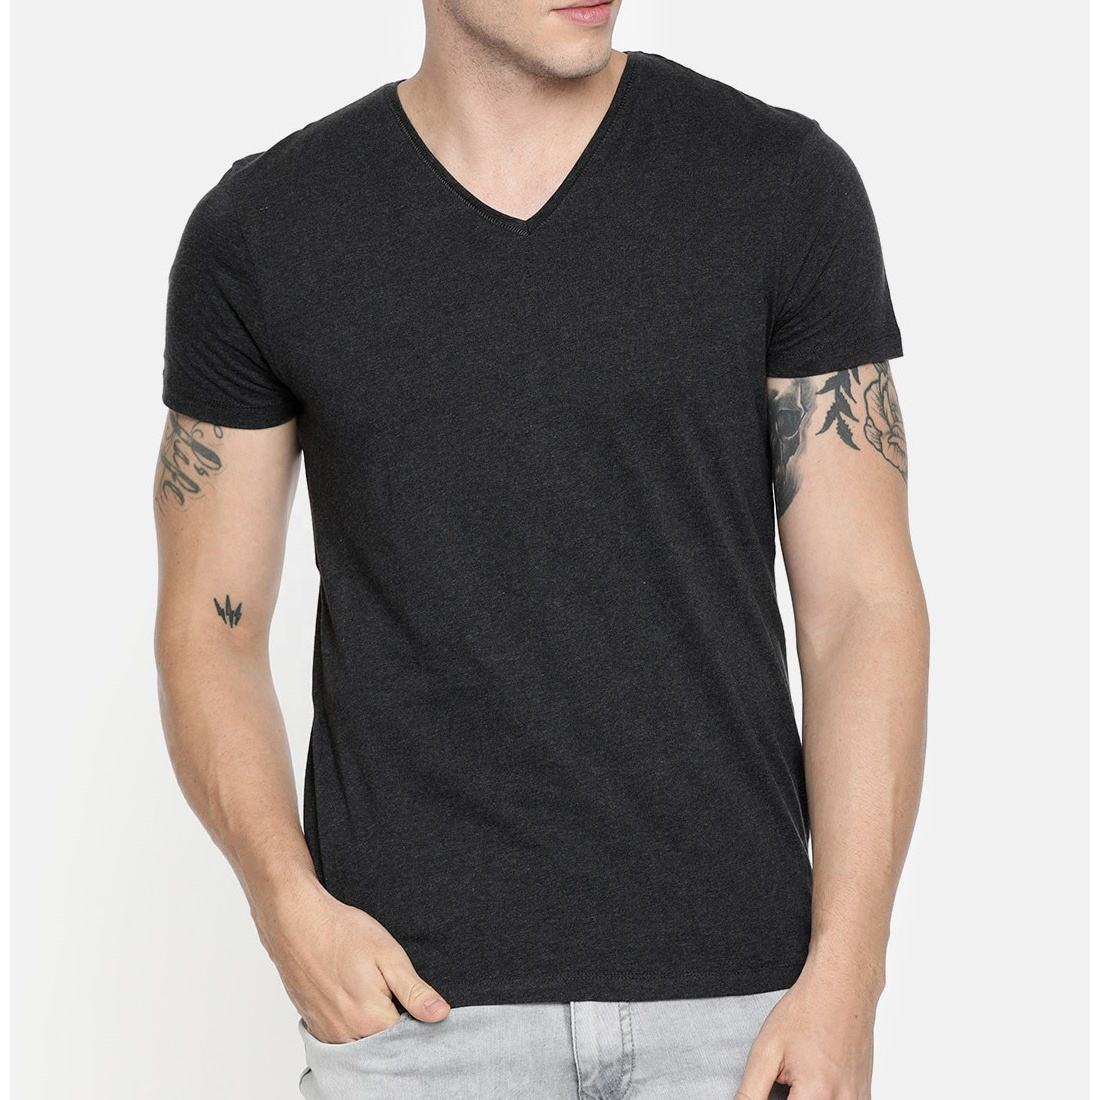 v neck t shirts men made in pakistan